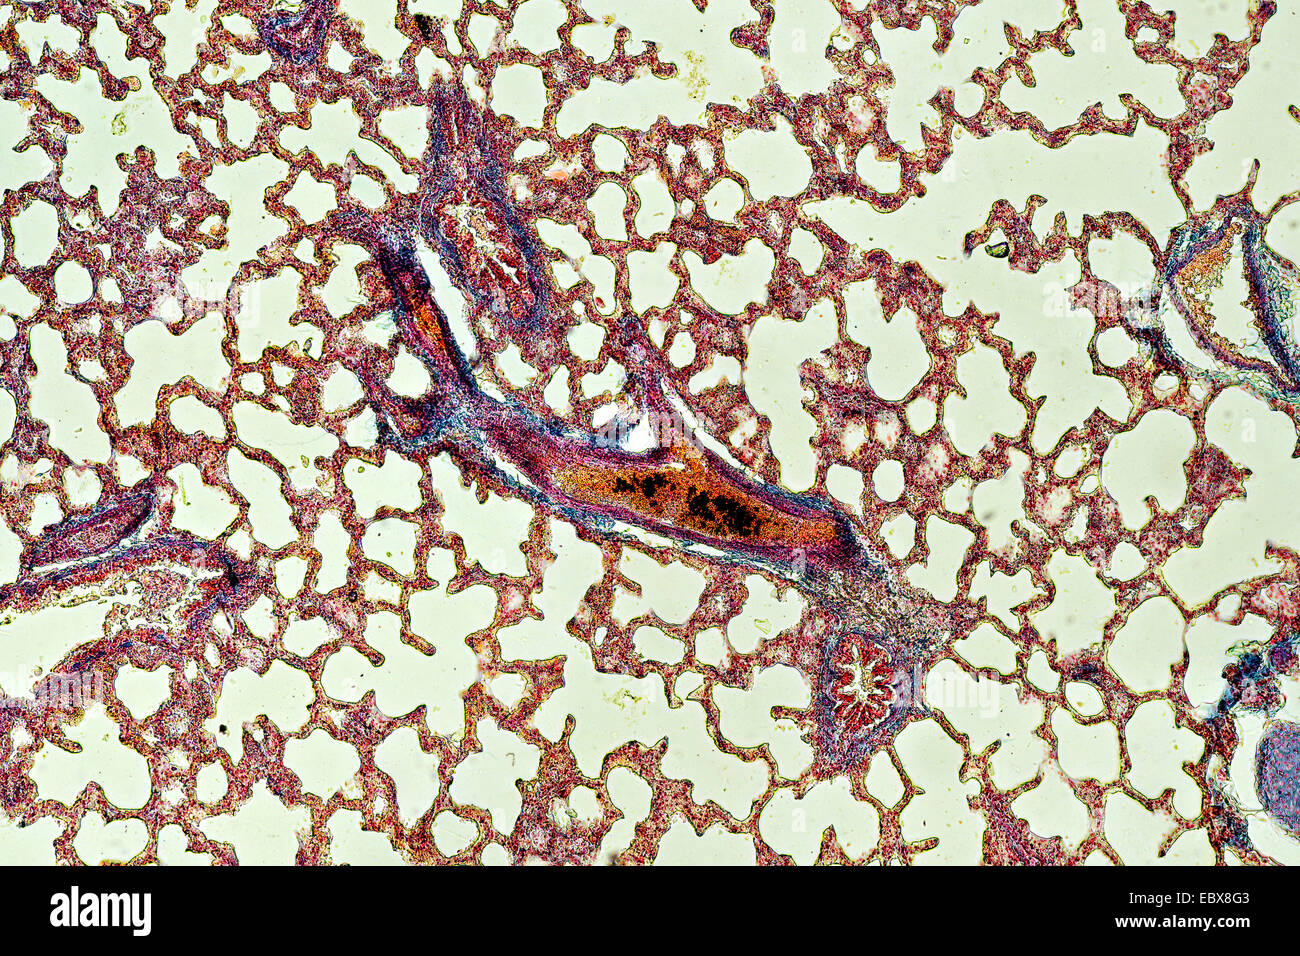 Cross Section Of The Lung With Bronchioles Alveoli And Blood